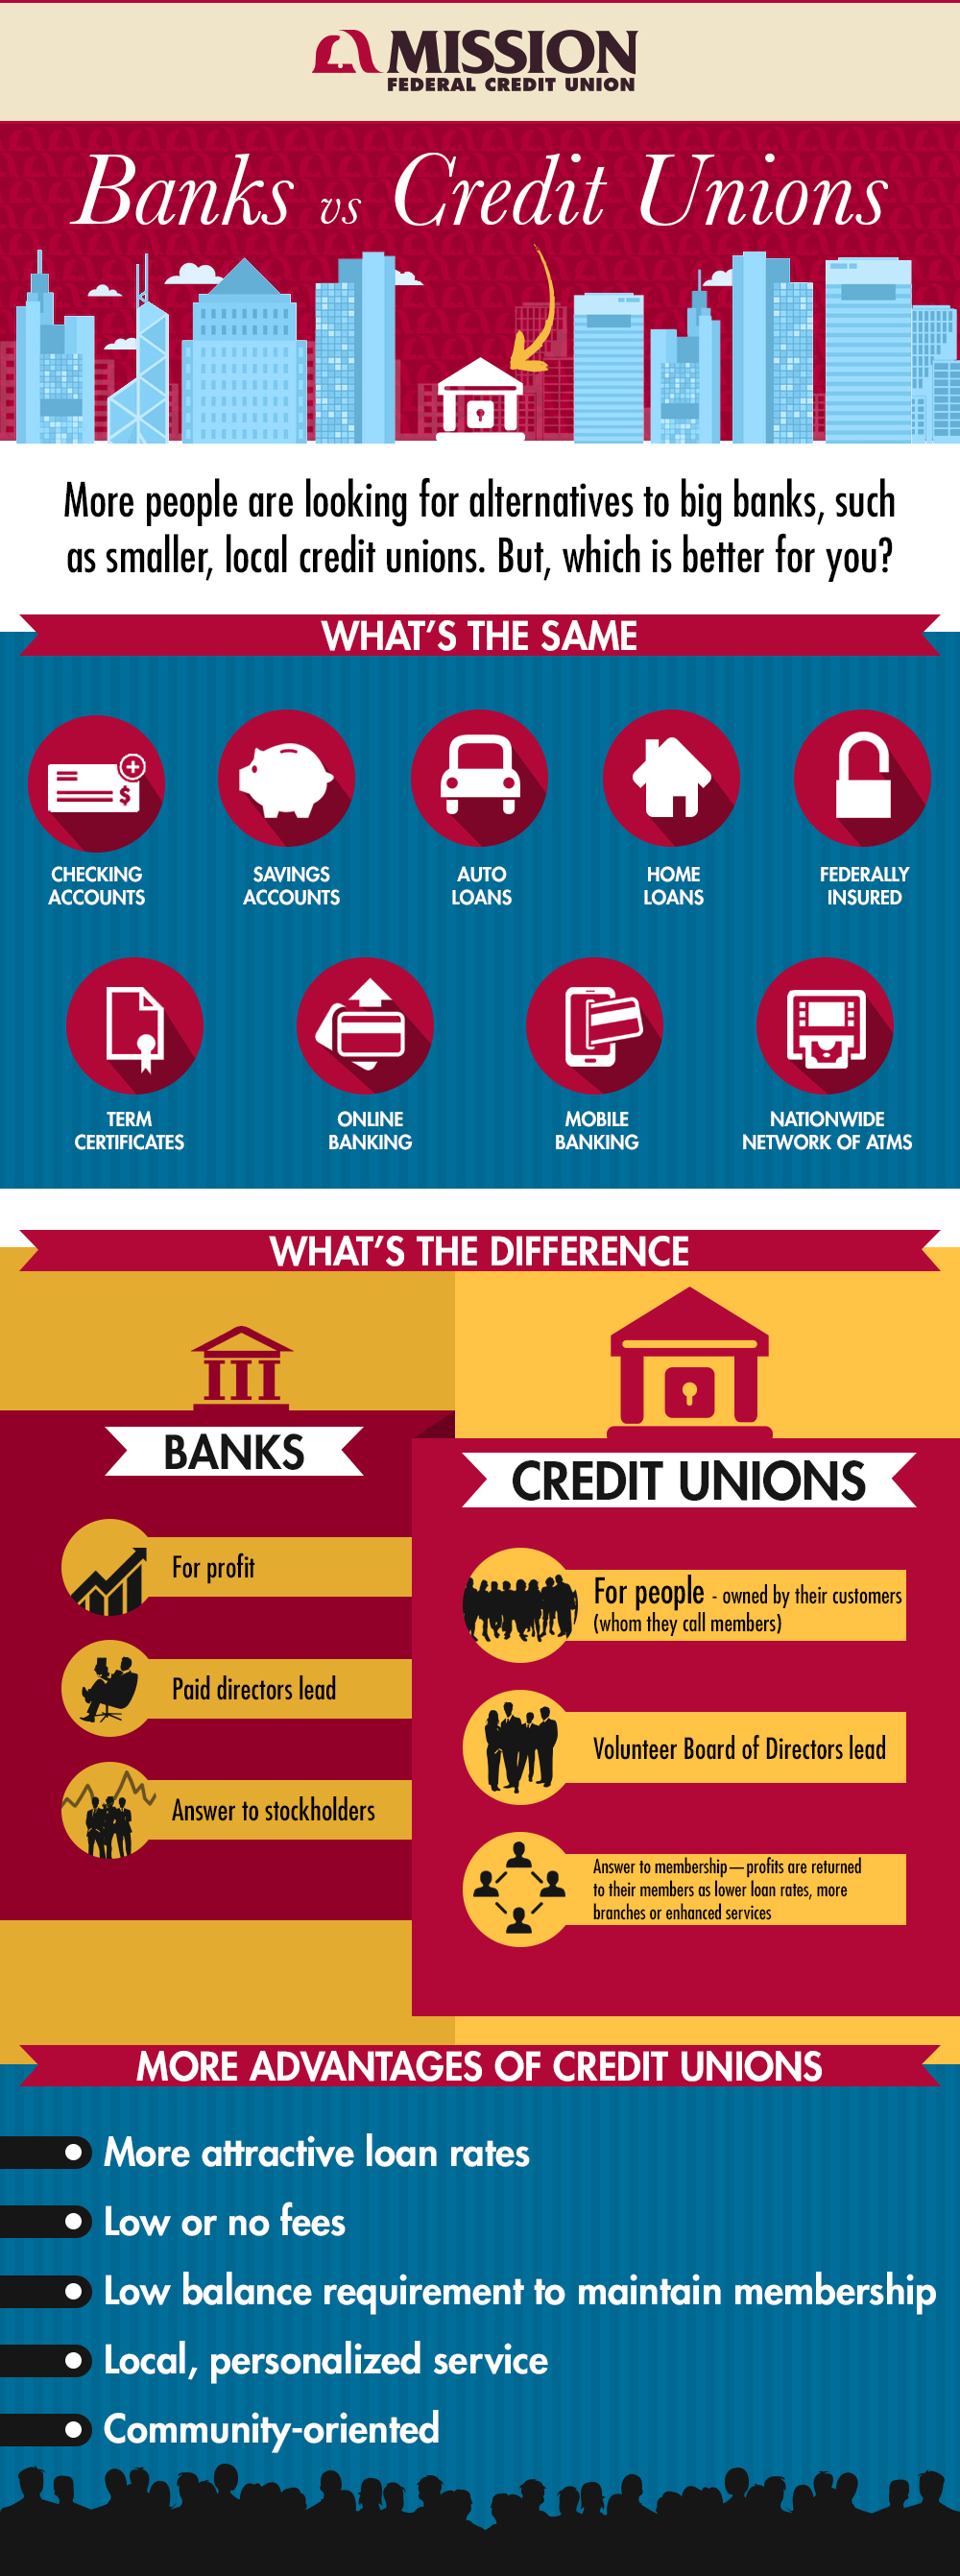 Infographic of banks versus credit unions.